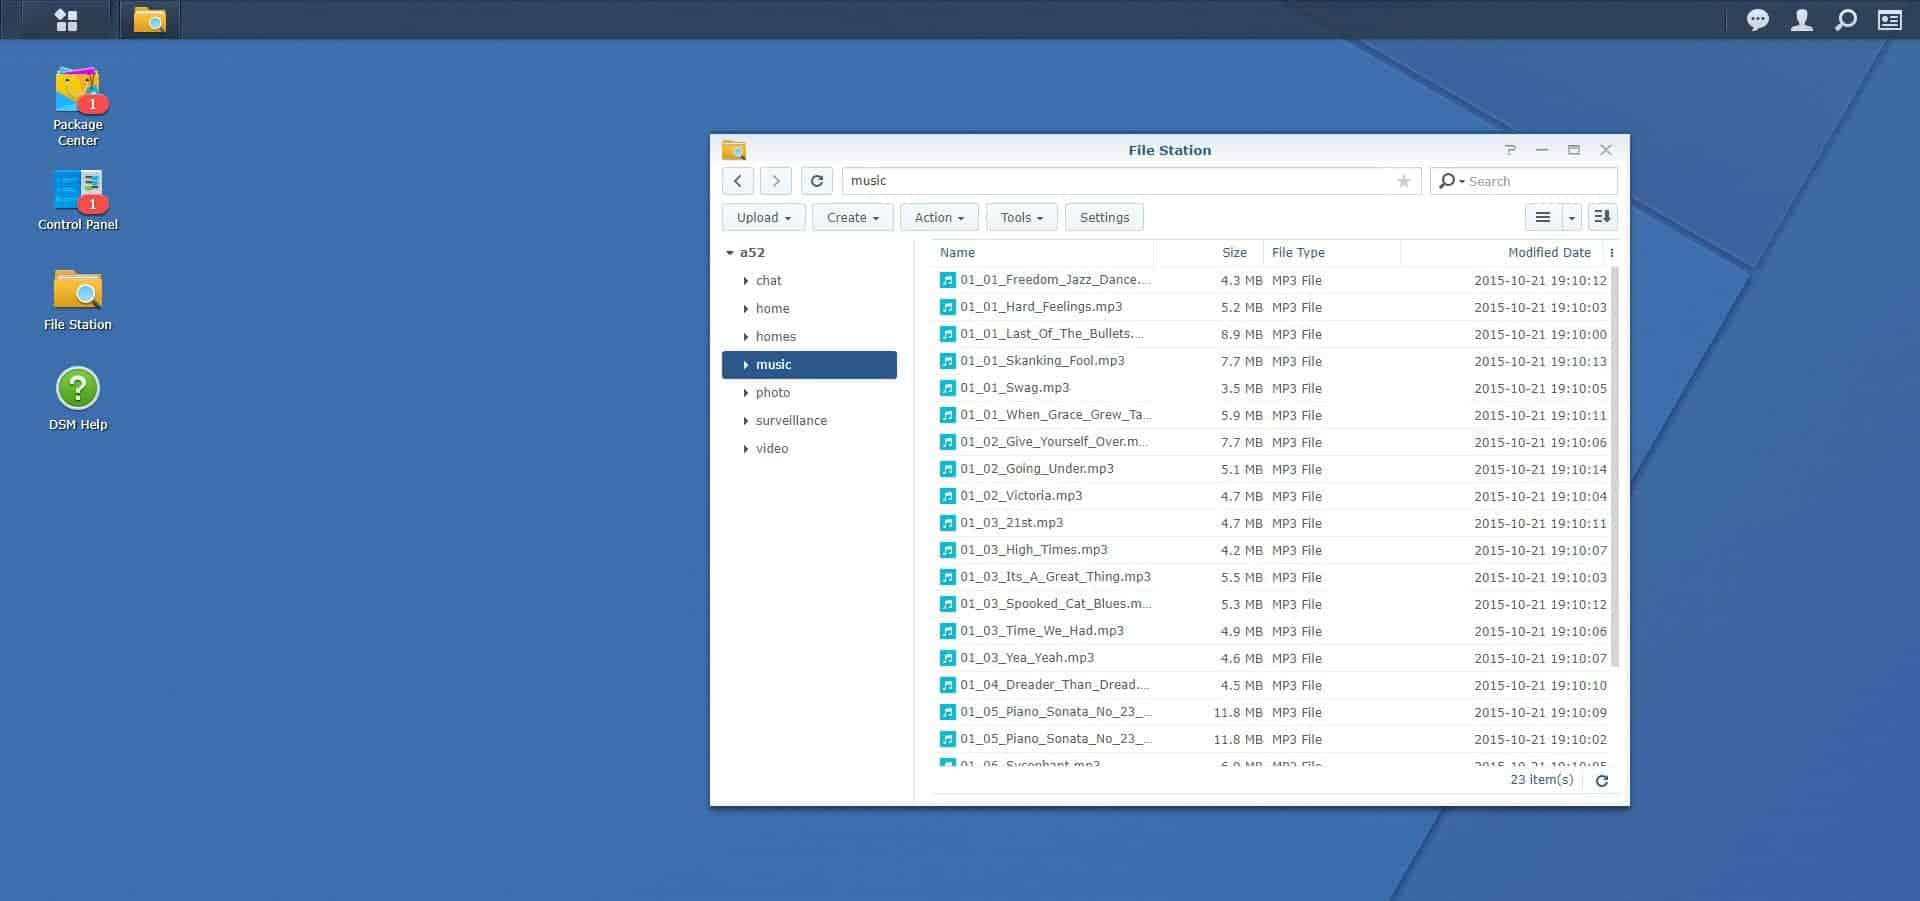 Synology-DS1517-Screens10 Synology DS1517+ 5 Bay NAS Review